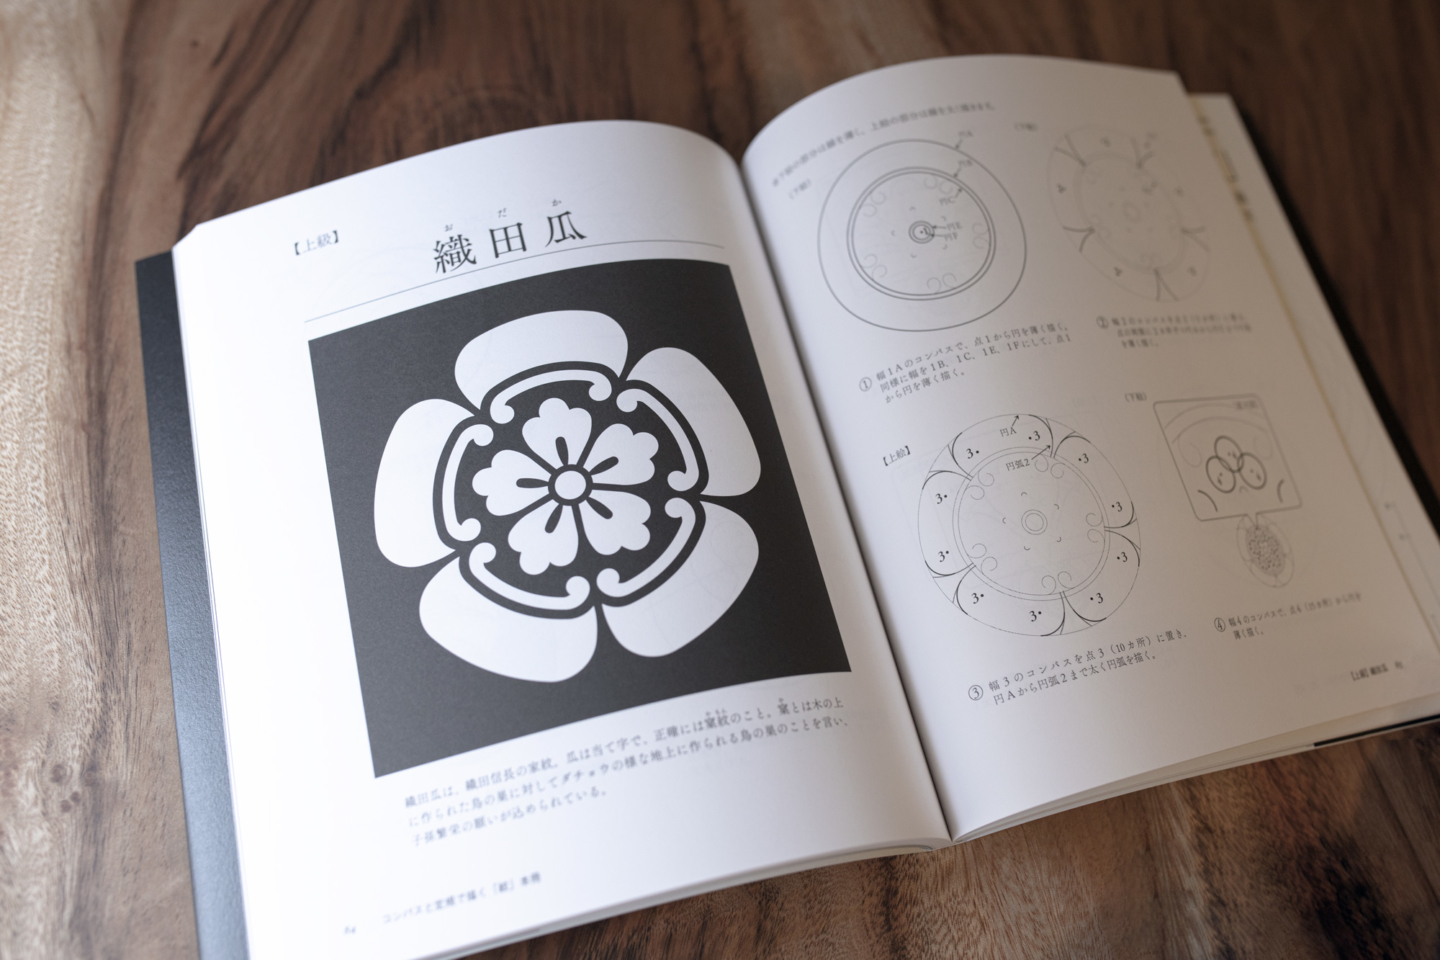 【Kyogen】 『UWAEMON: A Mon anyone can draw with a compass and ruler!』 Launch Information